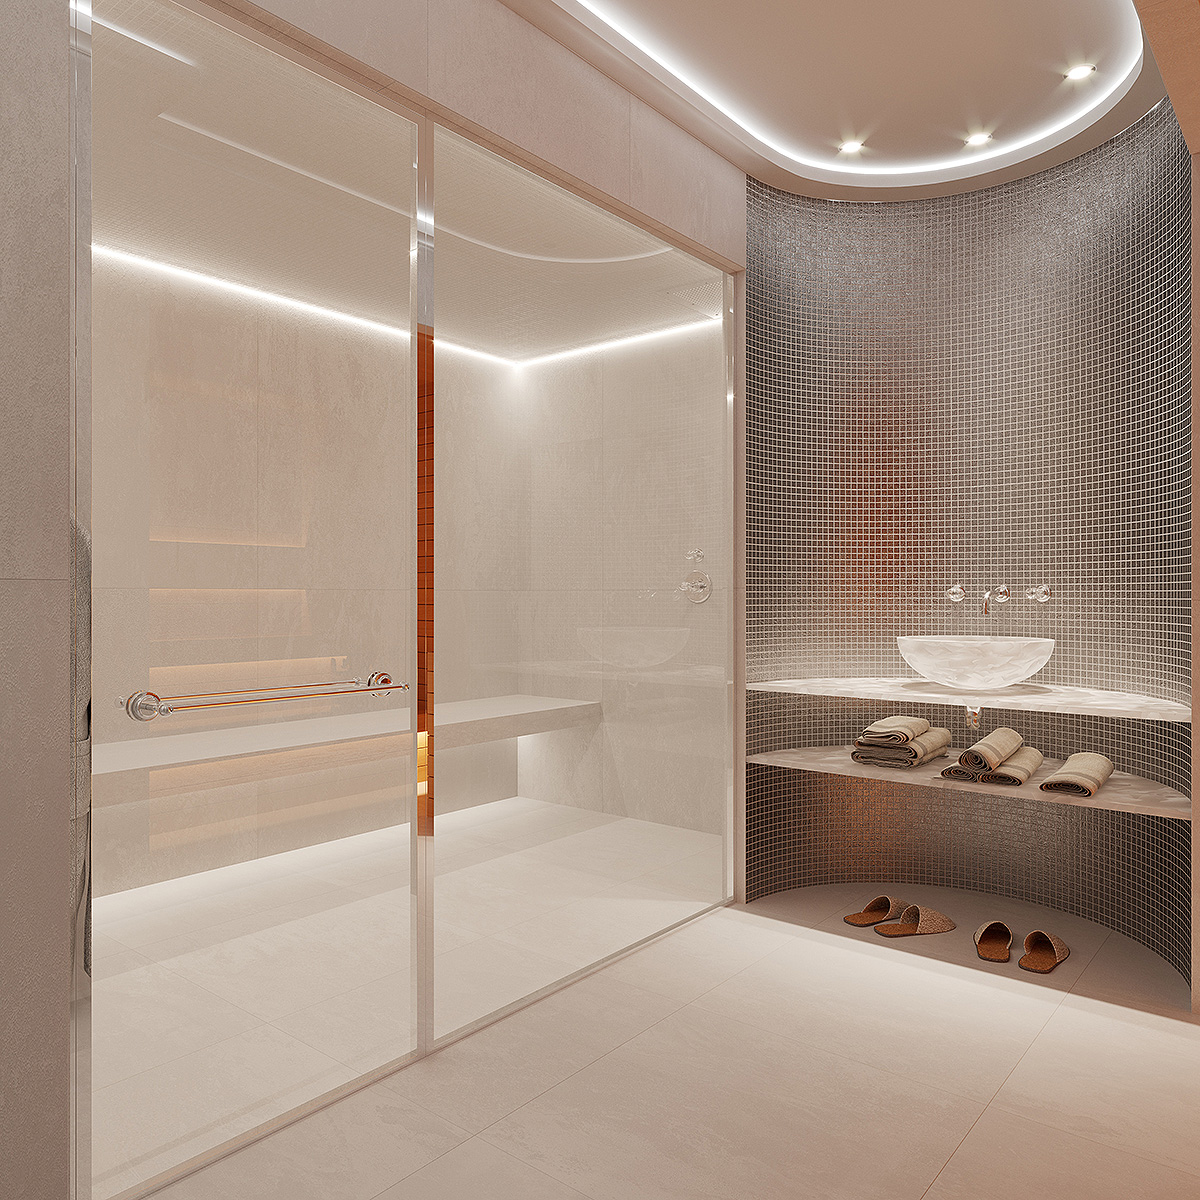 Ambiance spa de luxe by THG BATH CONCEPT